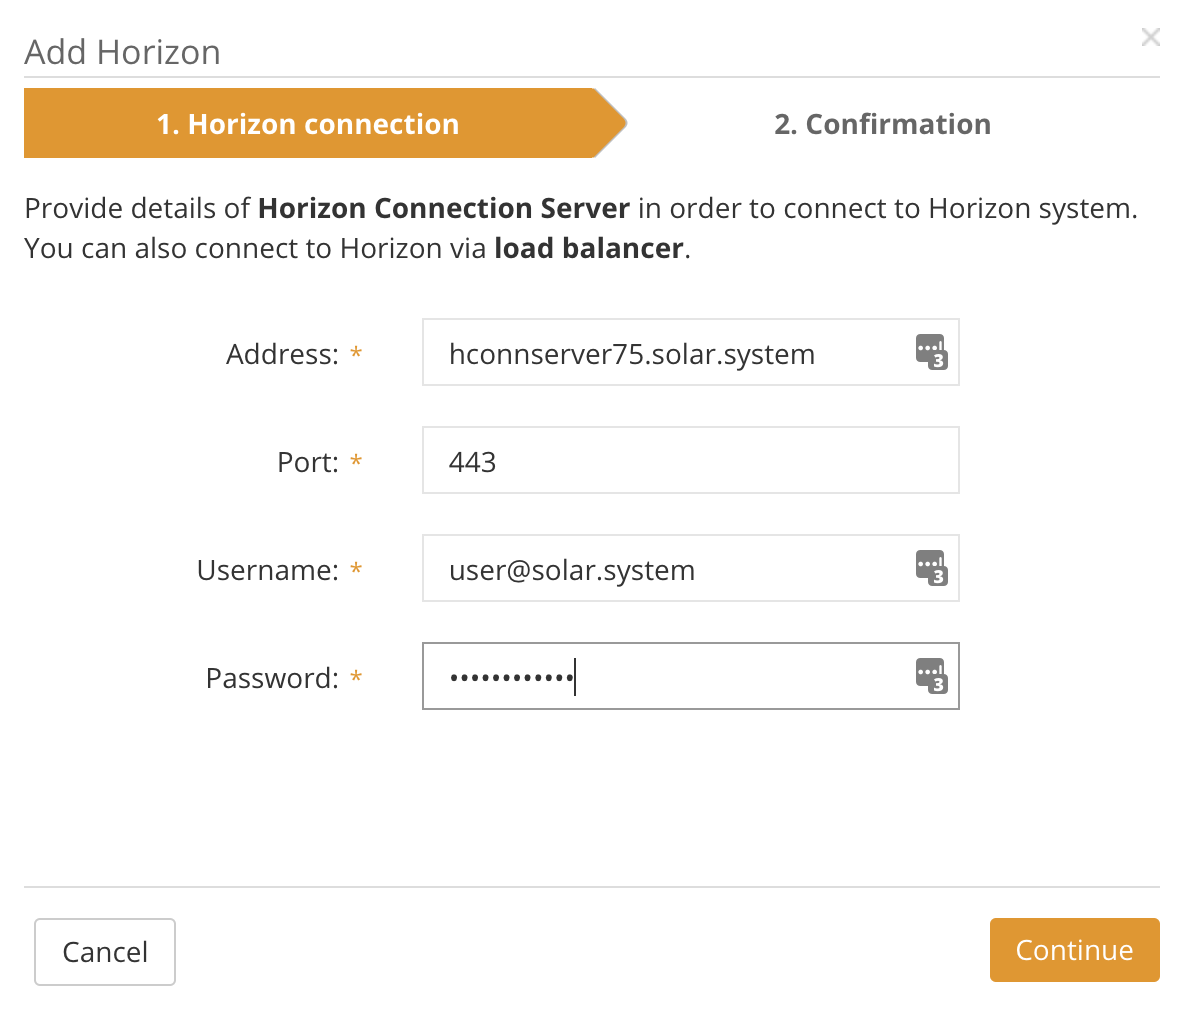 Horizon connection